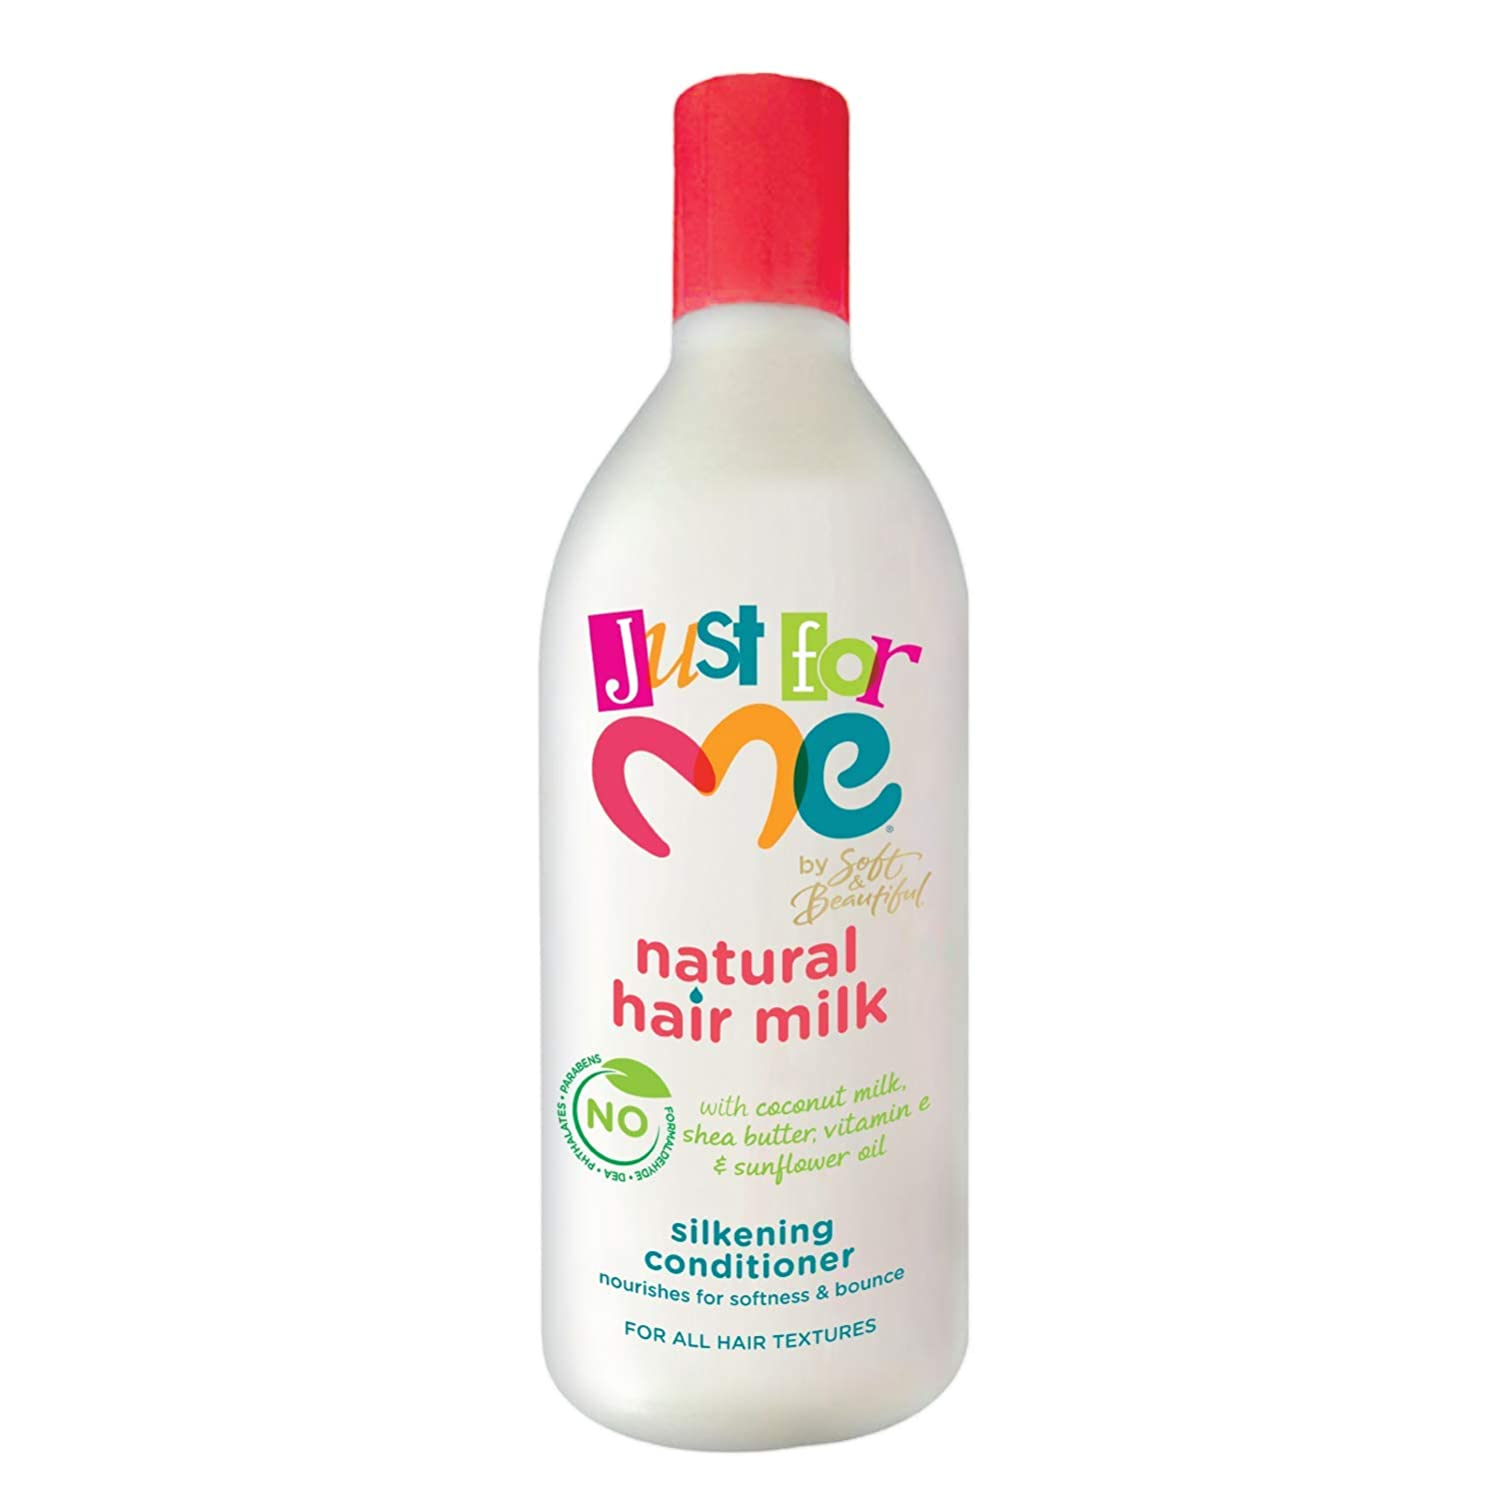 Just For Me Natural Hair Milk Silkening Conditioner, 13.5 Fluid Ounce